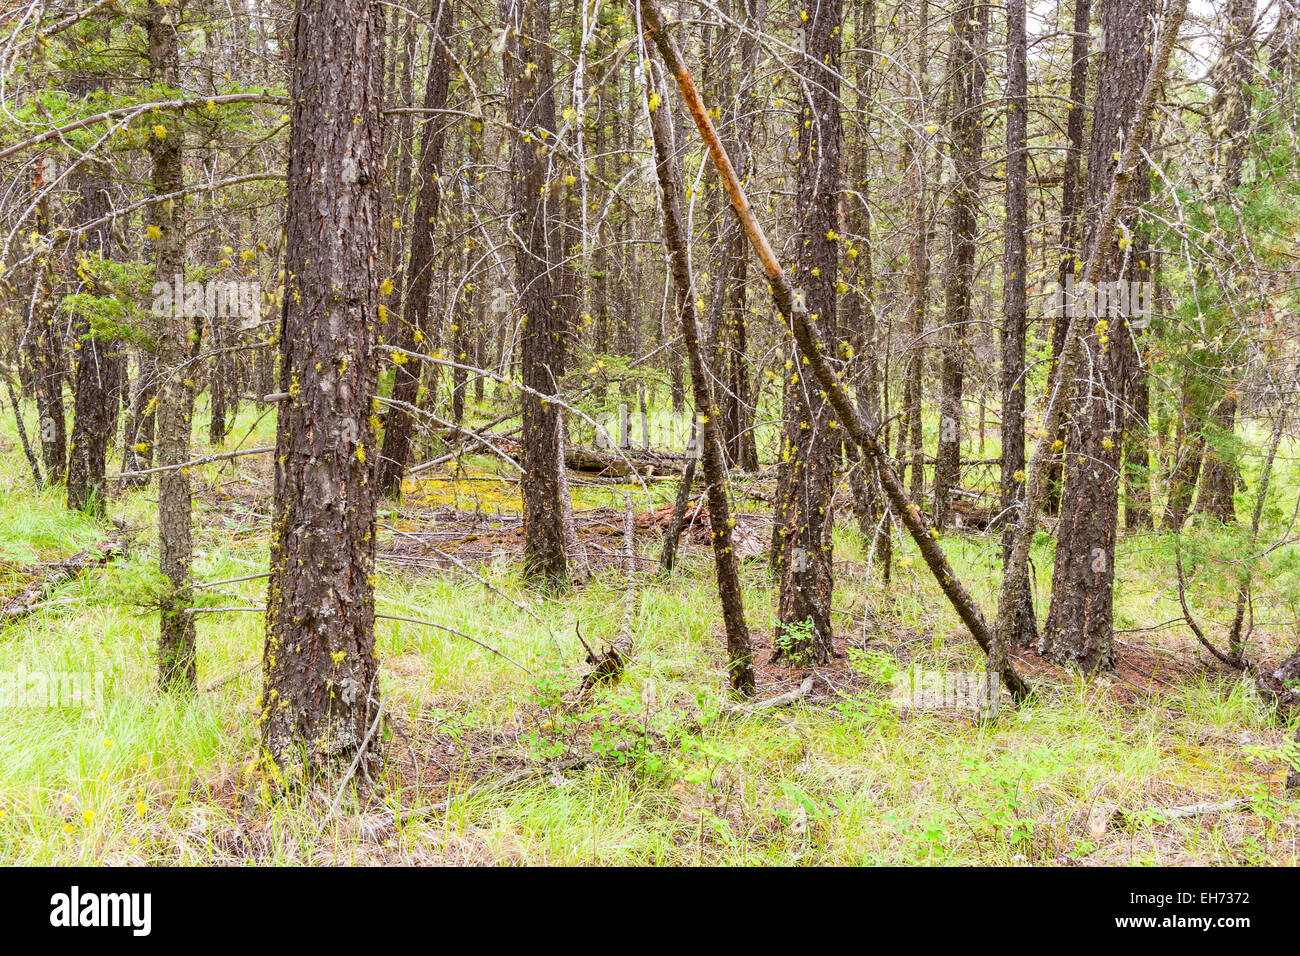 Detail of boreal forest near Clinton, British Columbia, Canada. - Stock Image